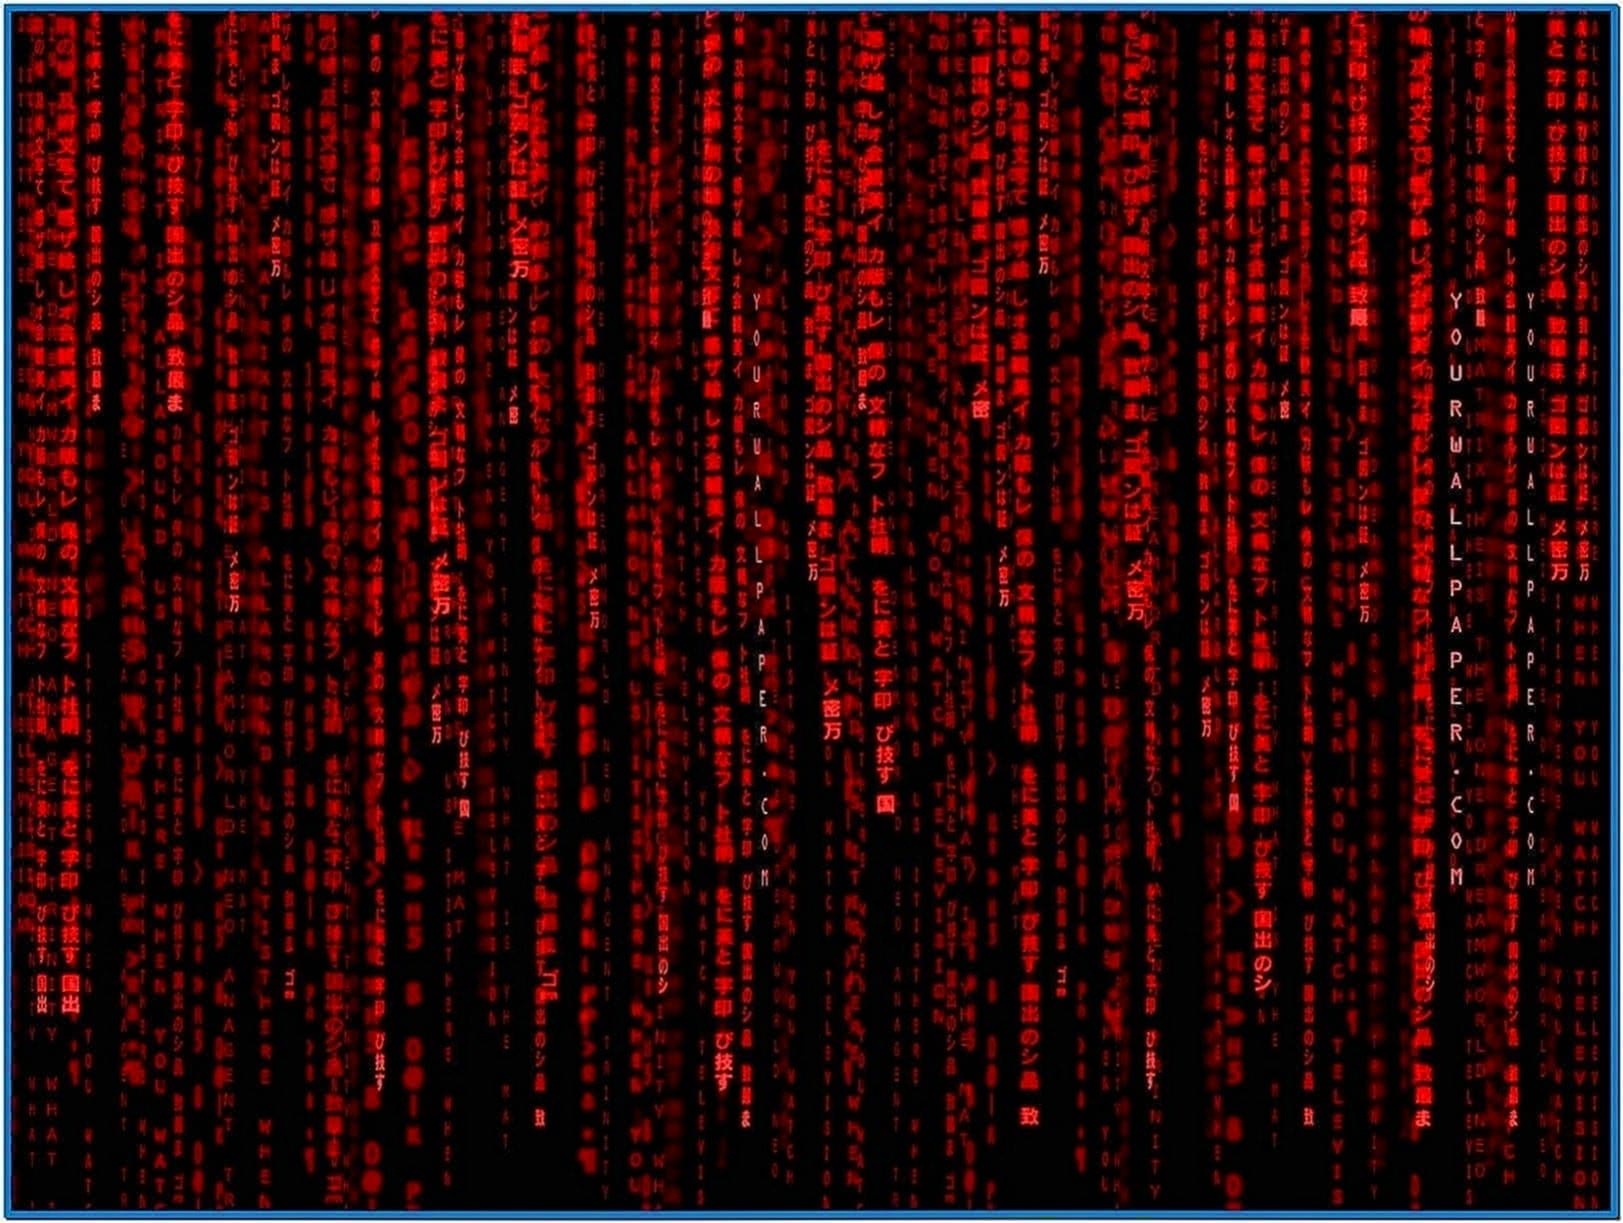 Matrix Code Screensaver Red